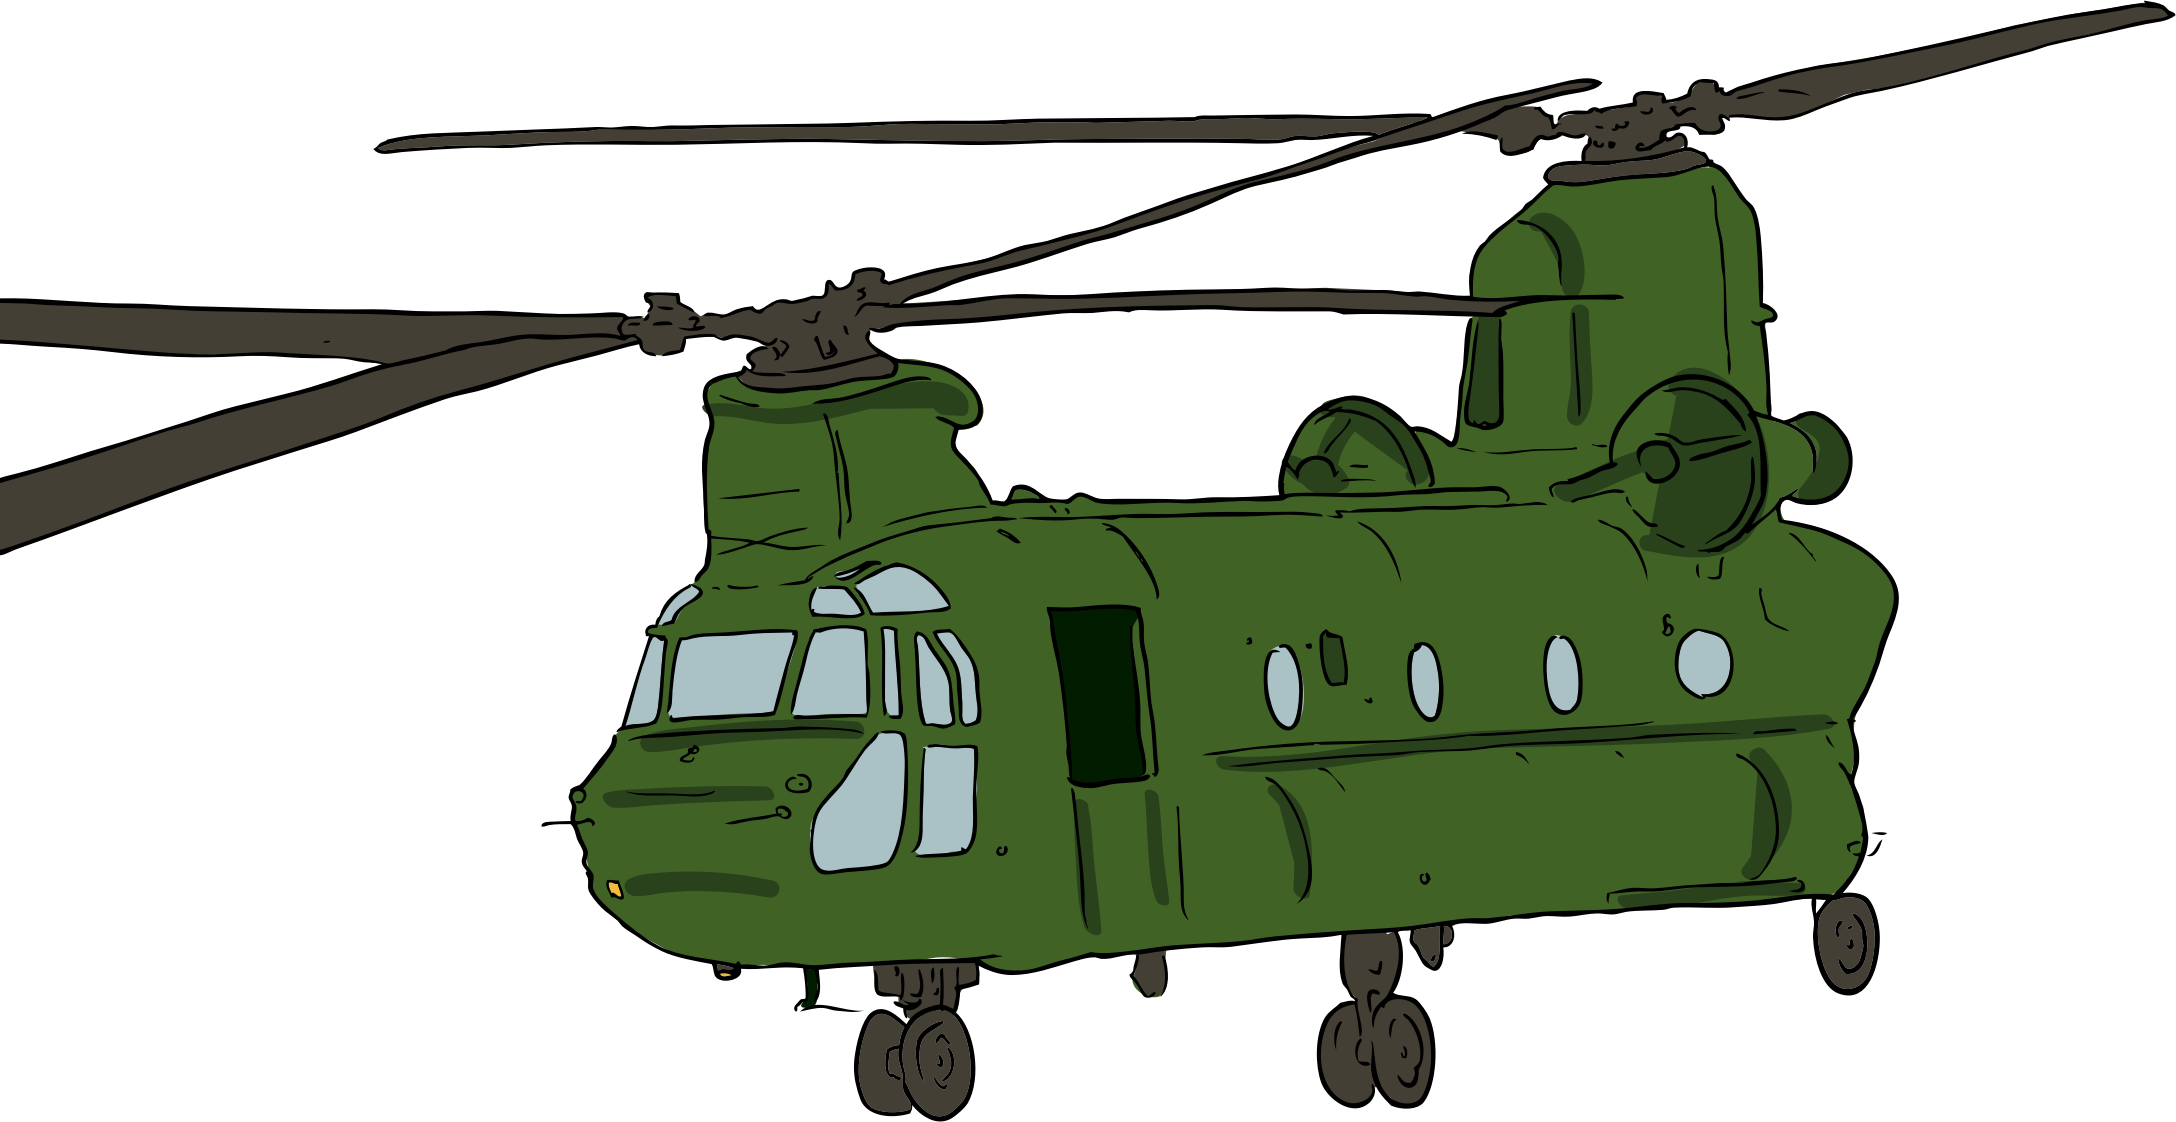 Helicopter clipart flying machine. Free military base pencil